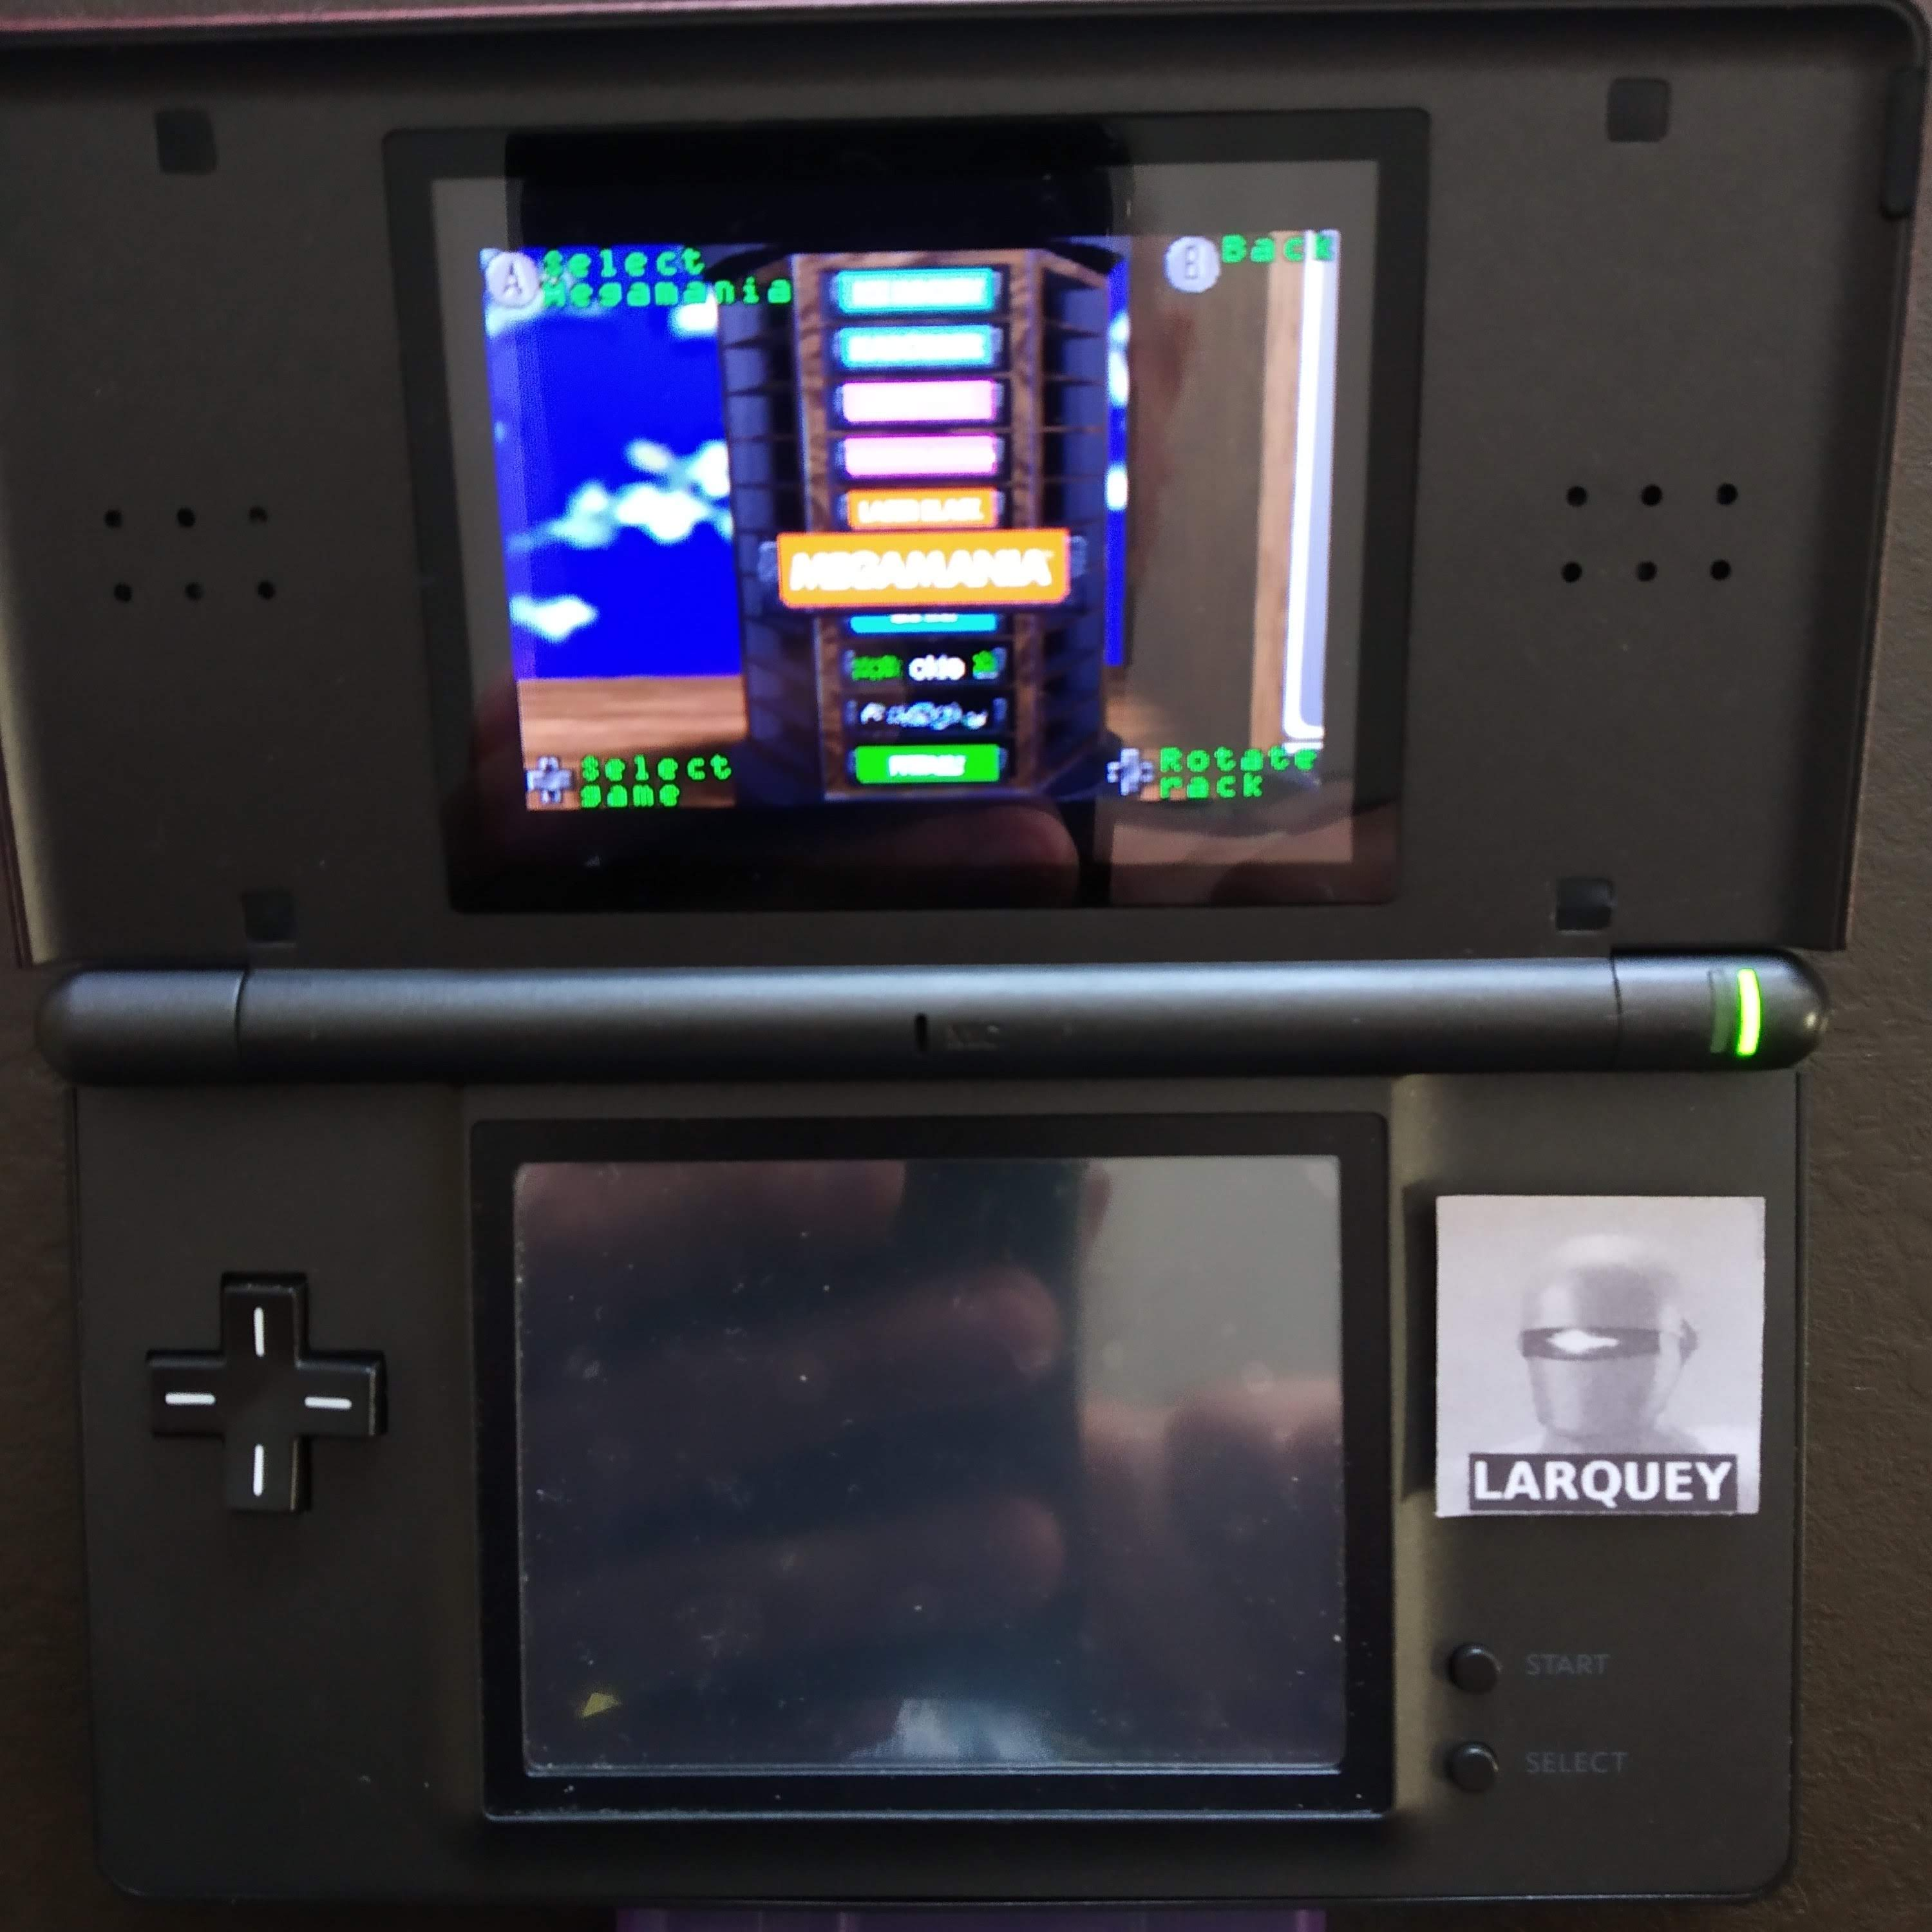 Larquey: Activision Anthology: Megamania [Game 3A] (GBA) 47,330 points on 2020-08-15 05:23:26